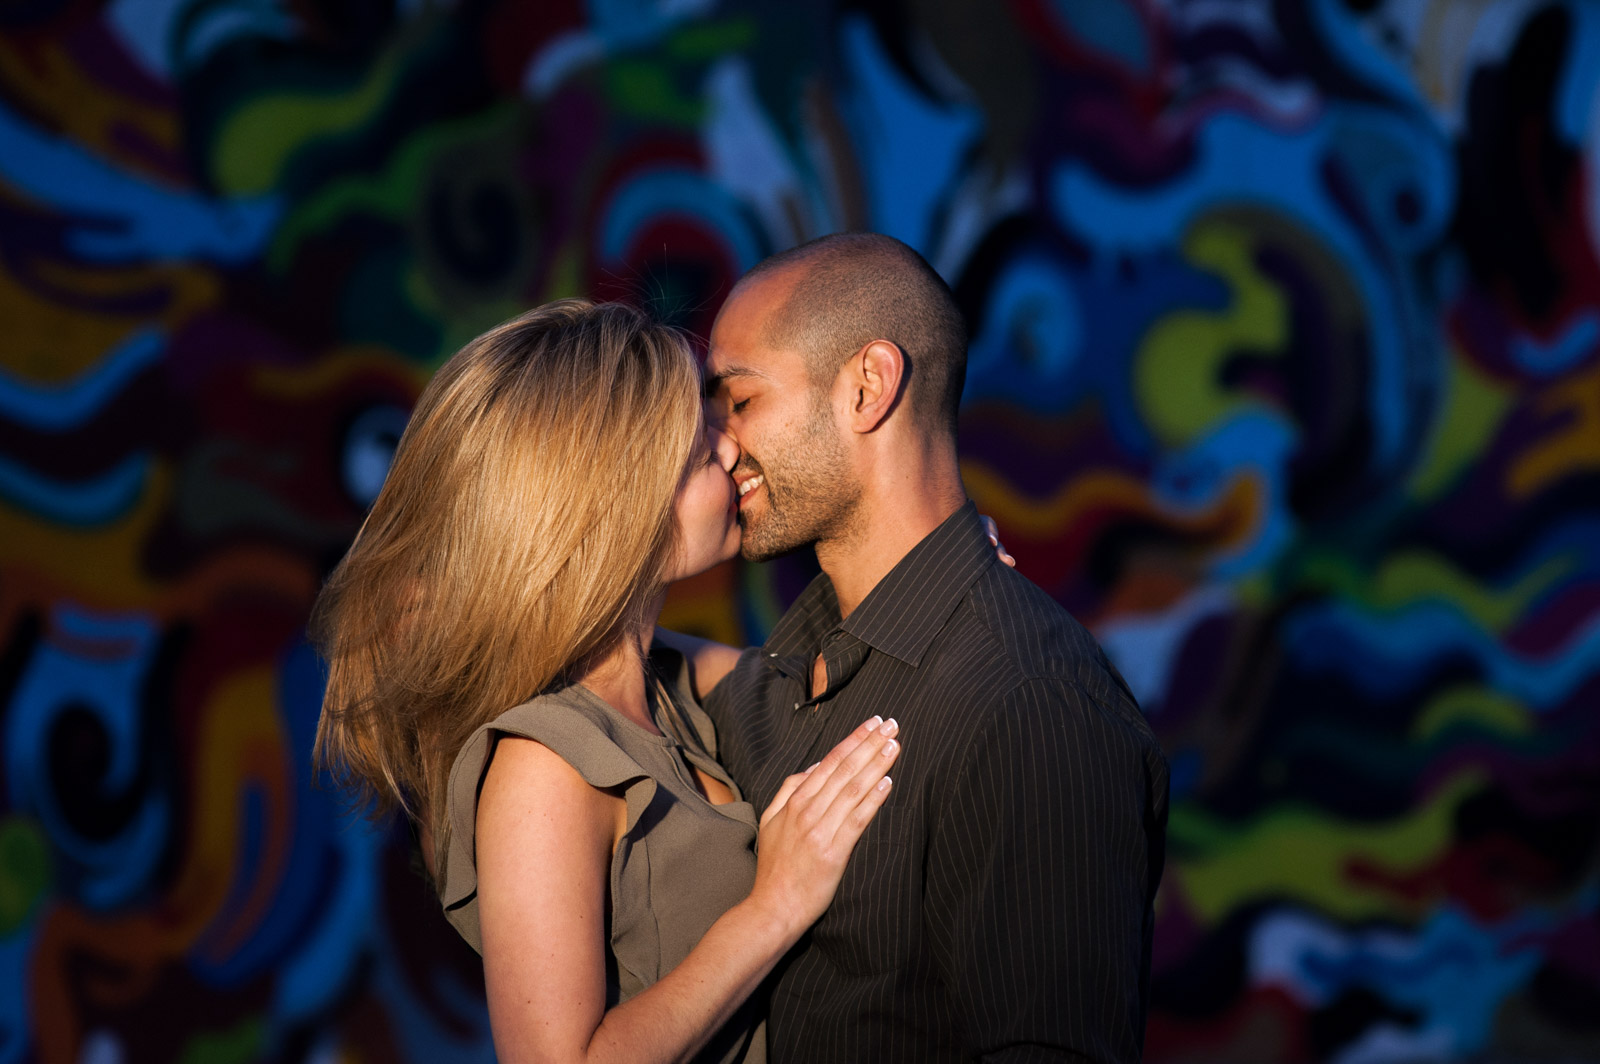 Engagement Session shot in Pilsen in front of street art and urban graffiti